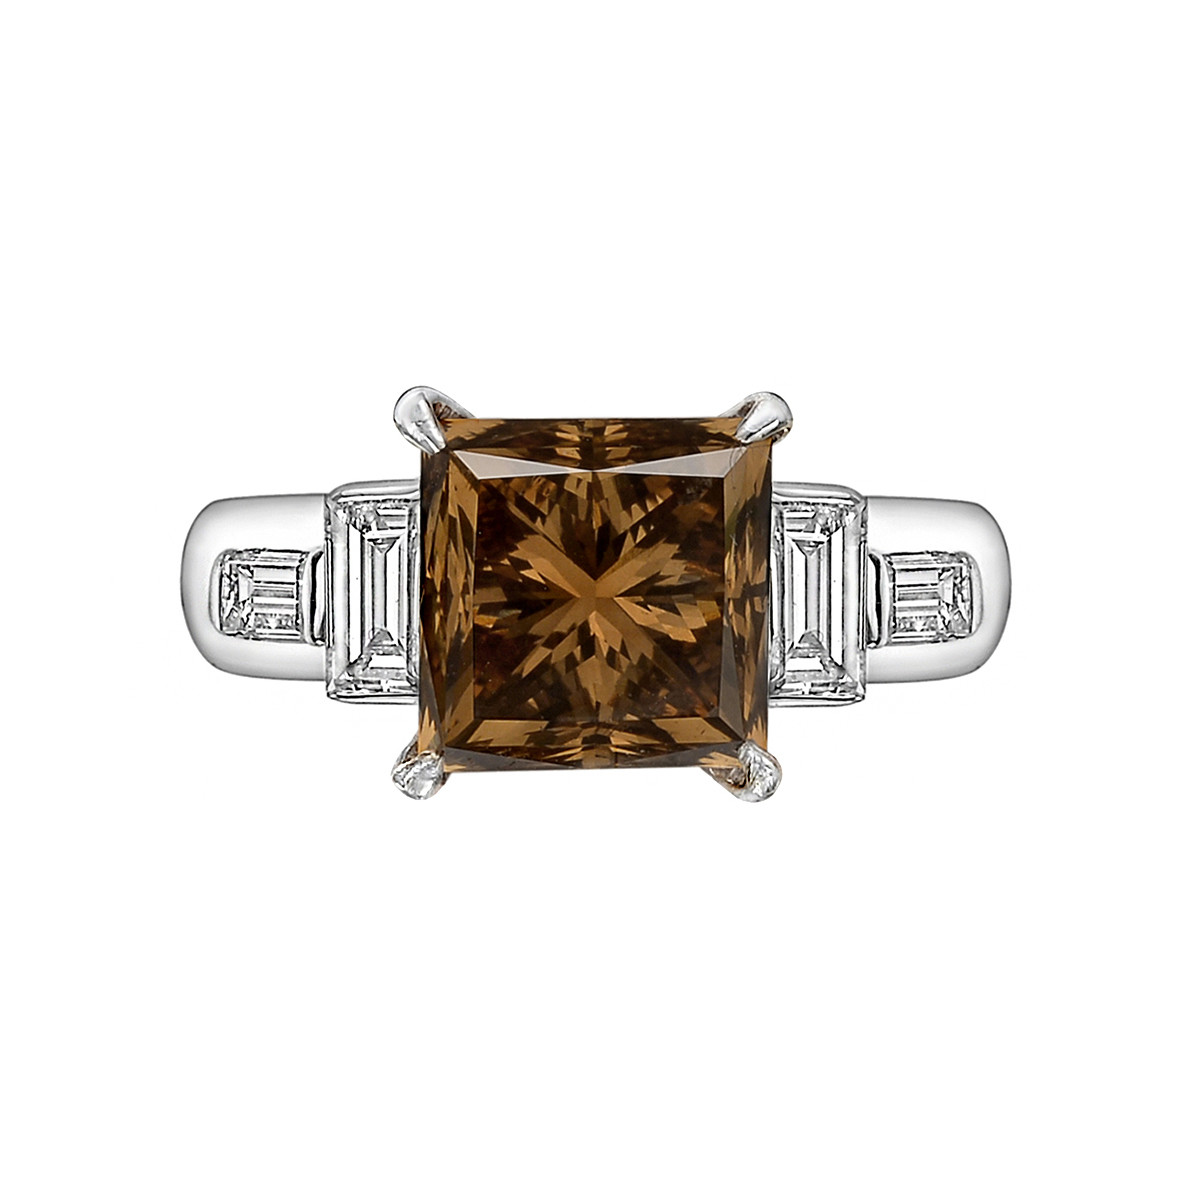 3.90ct Fancy Brown & White Diamond Ring